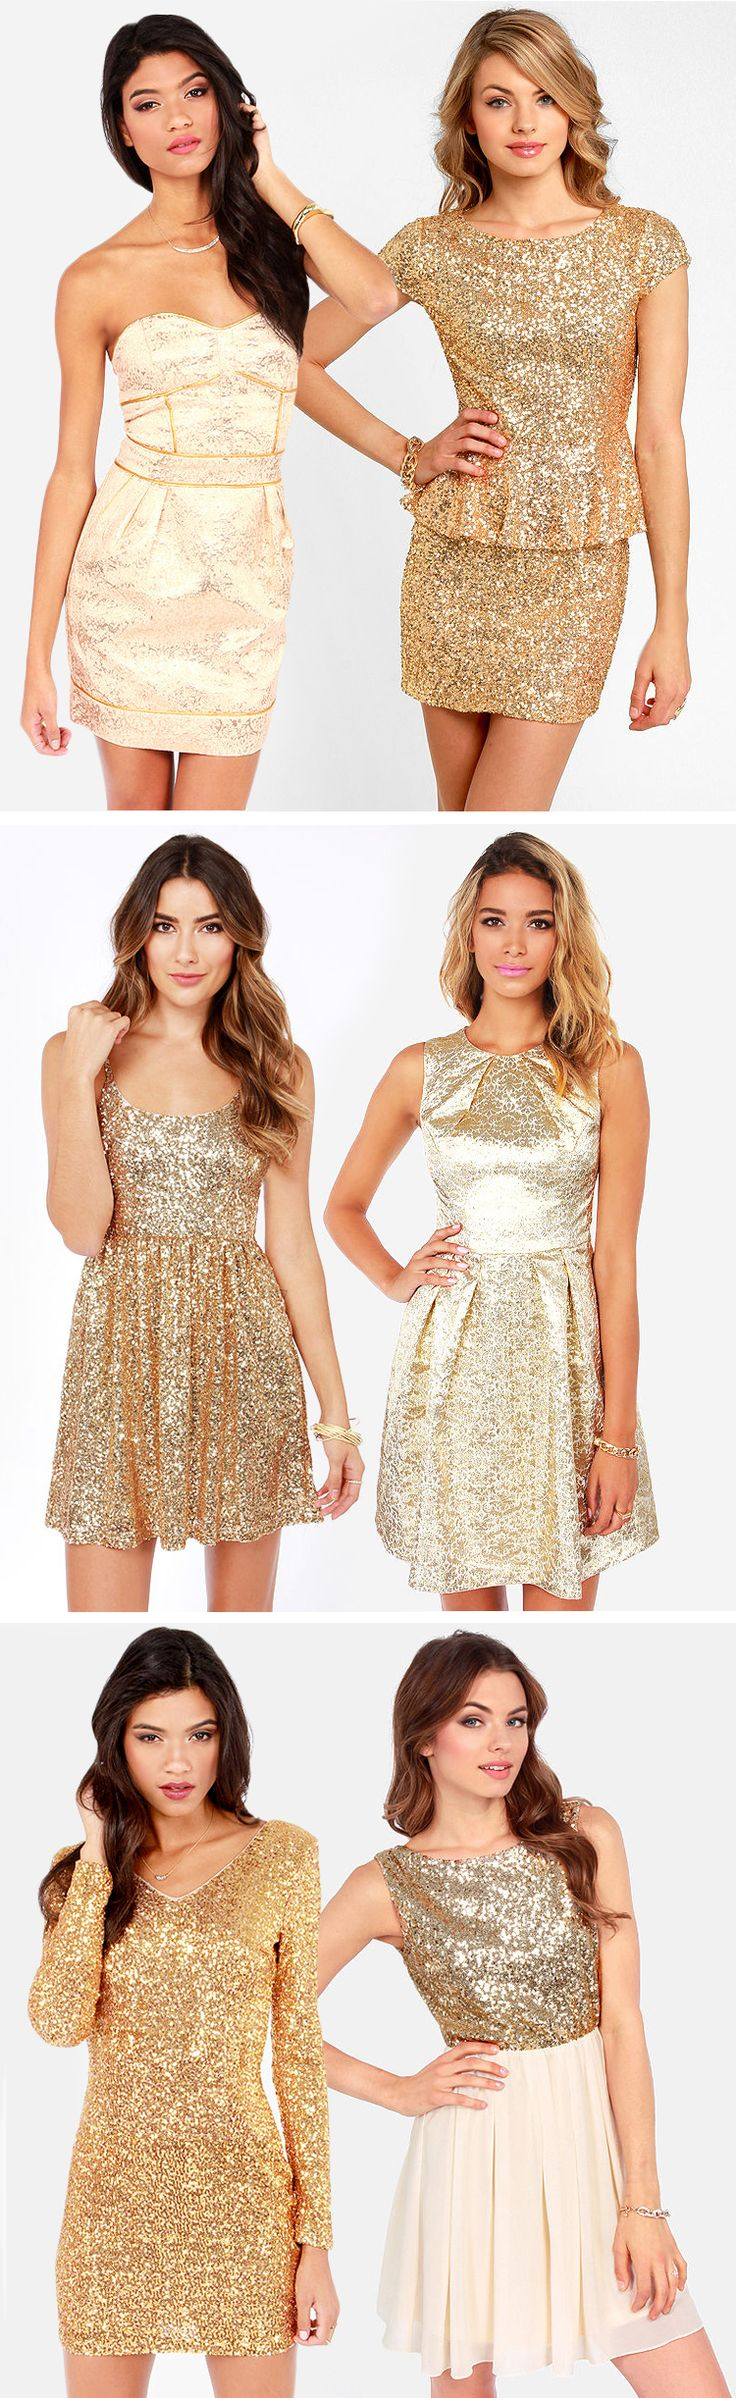 Gold Sequin Dresses #holiday #sparkle